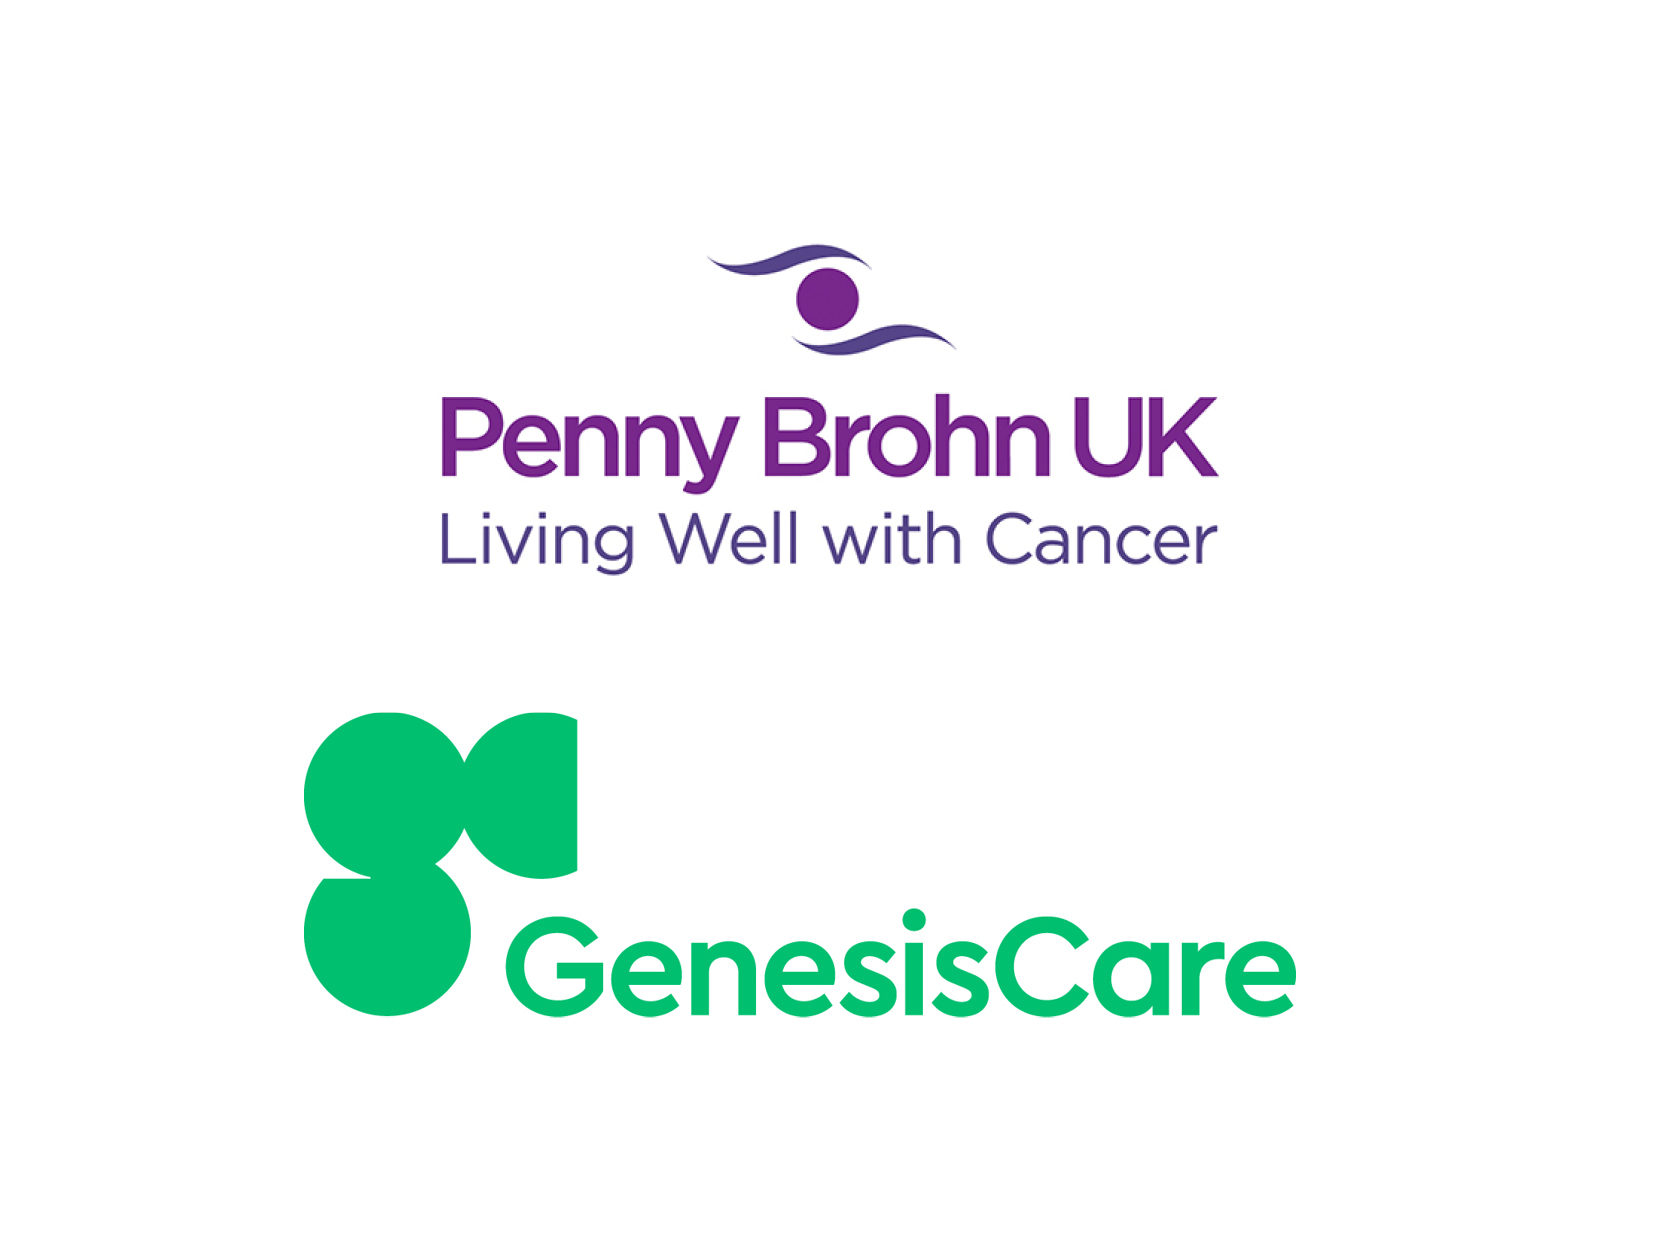 Joint logo for GenesisCare and Penny Brohn UK